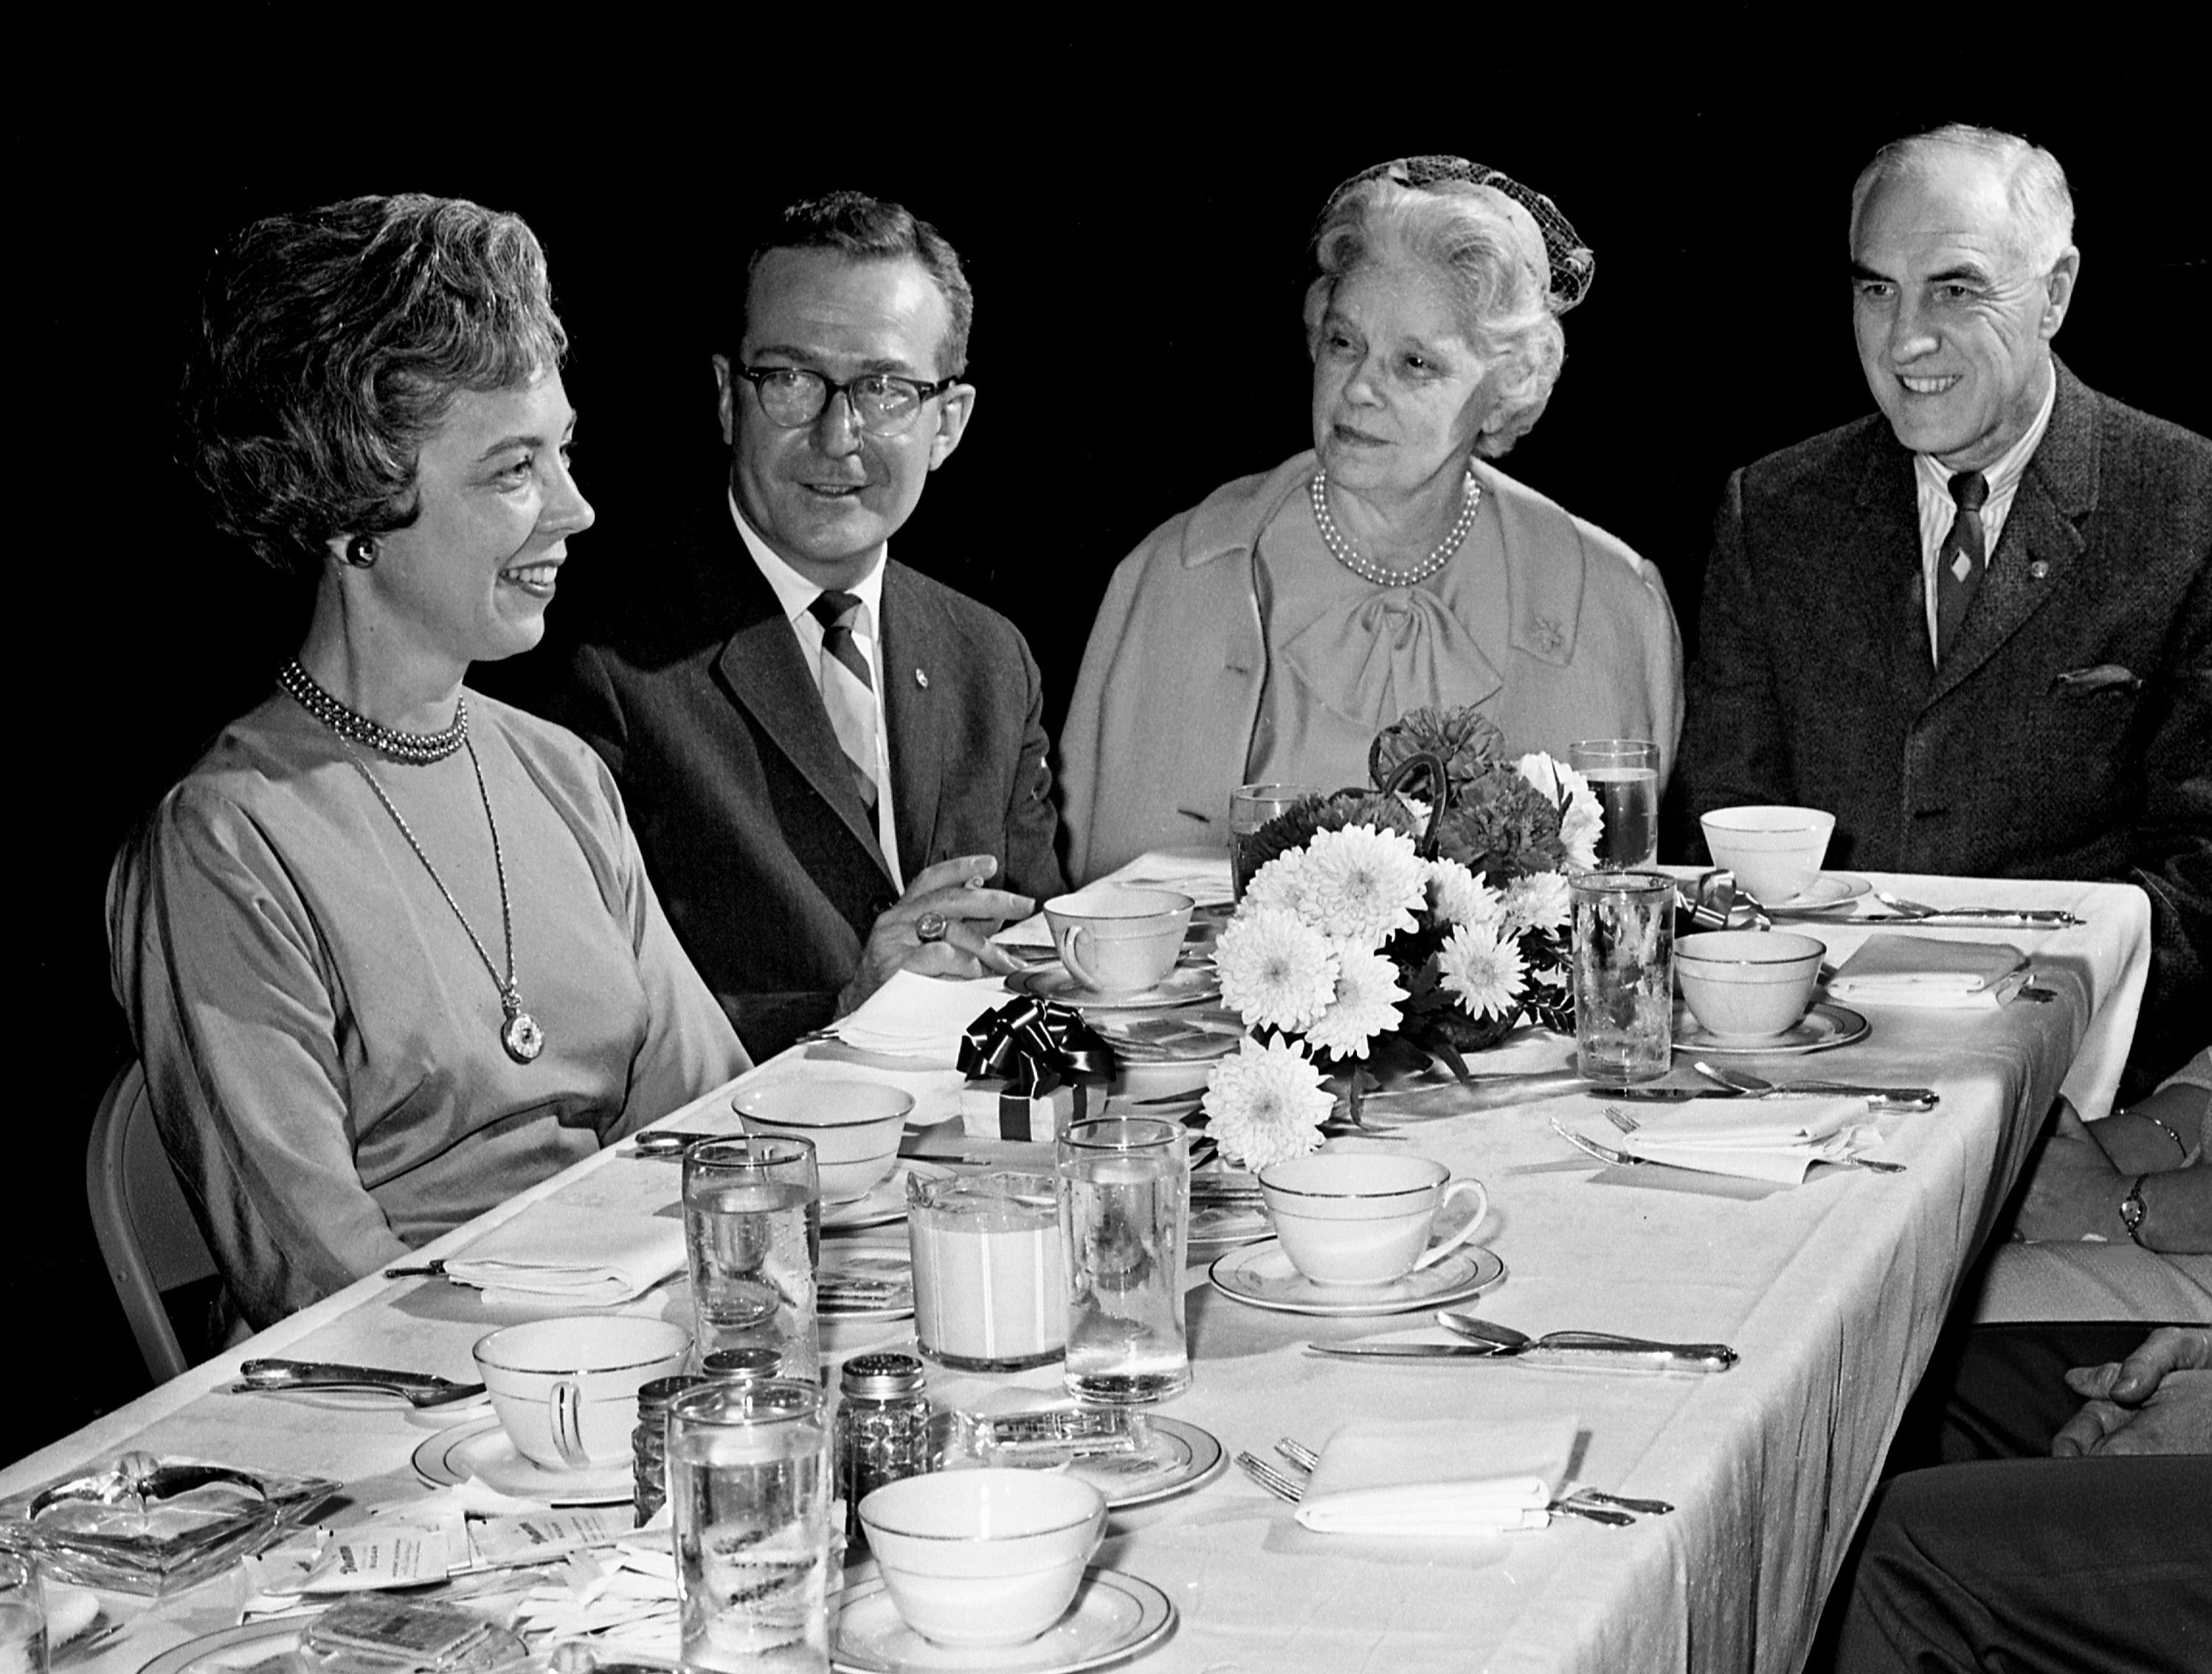 Members of the Downtown Lion's Club are entertaining at a Valentine party at the Top of the Plaza at Belle Meade Plaza honoring their wives Feb. 11, 1965. Two past presidents and their wives enjoying the luncheon are Mrs. and Mr. J. Thomas Dawson, left, and Mrs. and Mr. Terry Hart.